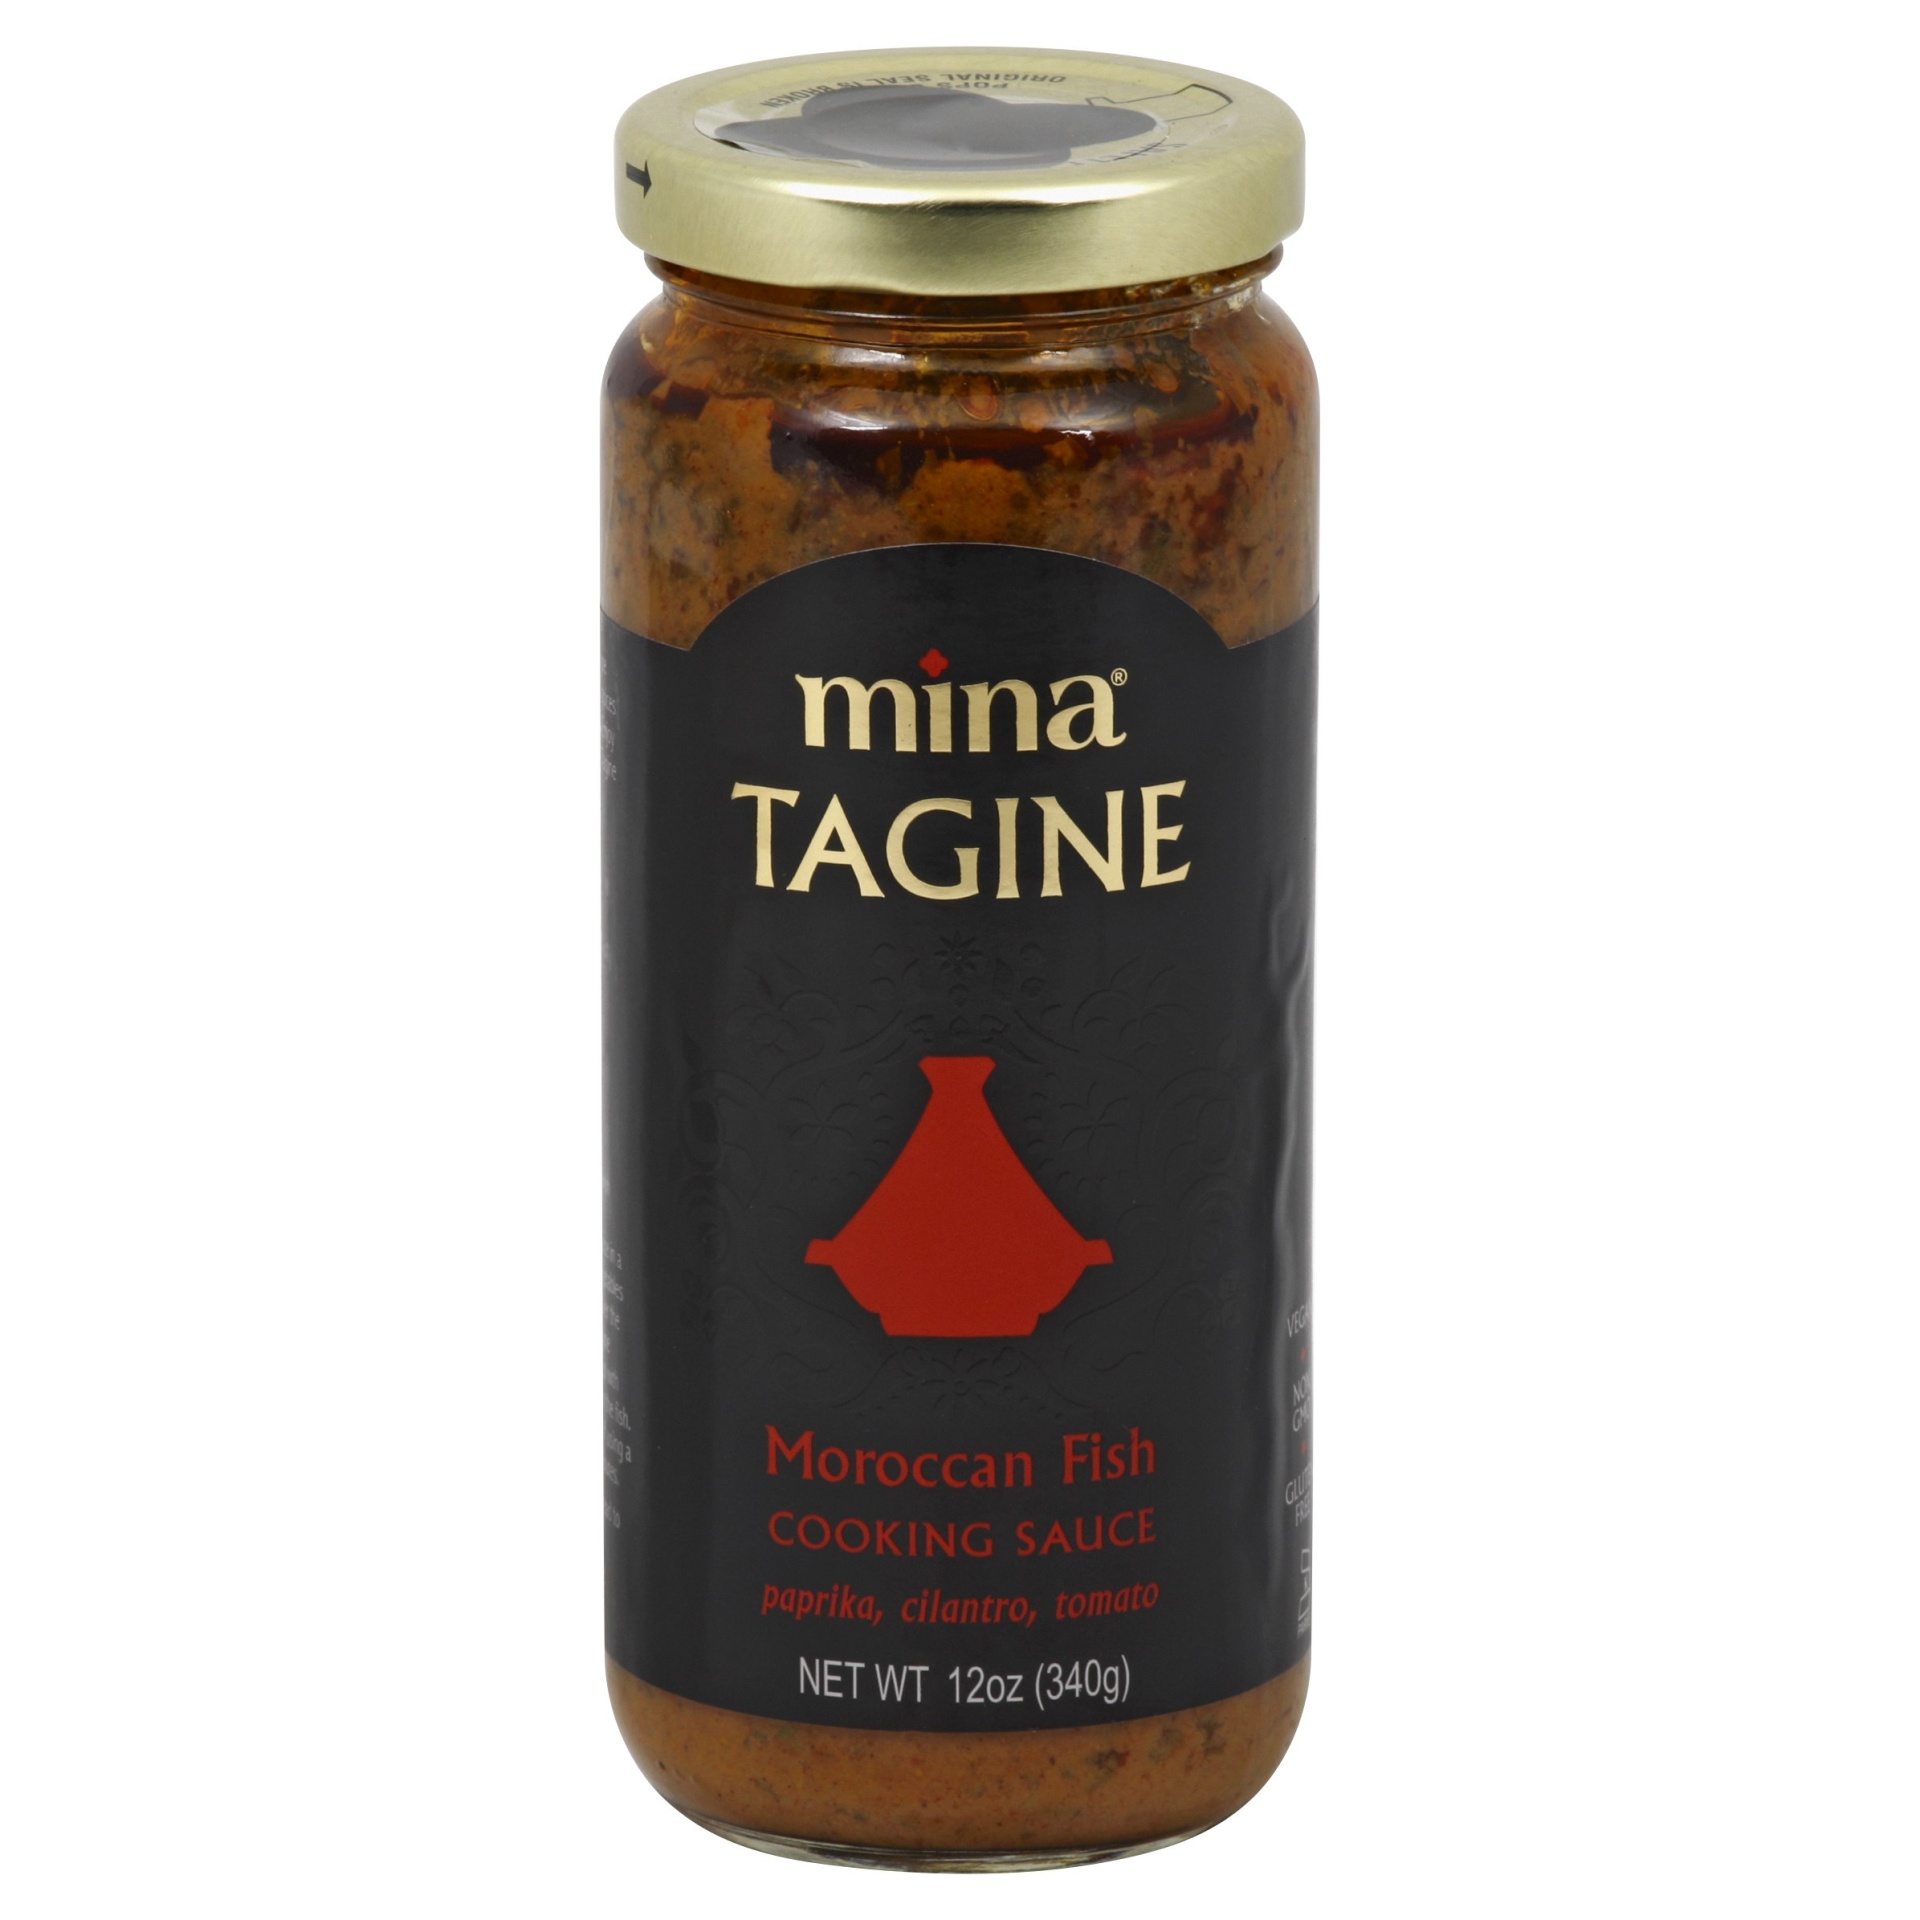 slide 1 of 2, Mina Tagine Moroccan Fish Cooking Sauce,